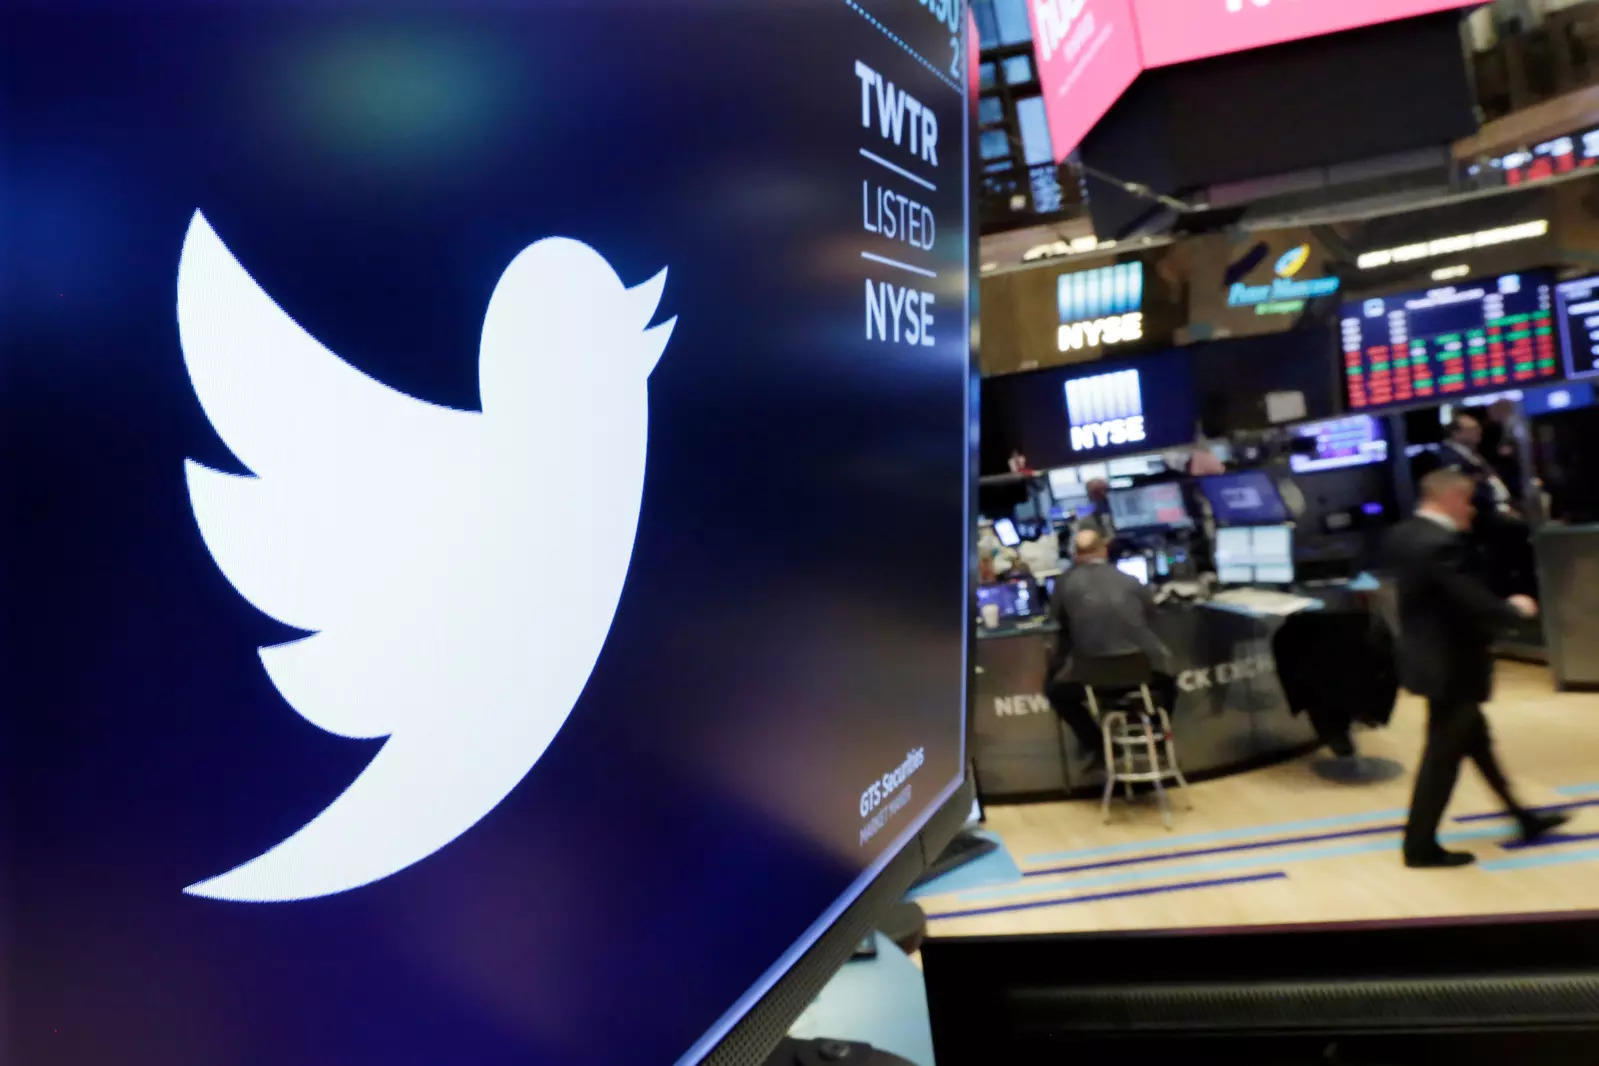 Twitter tumbles after digital ad sales disappoint